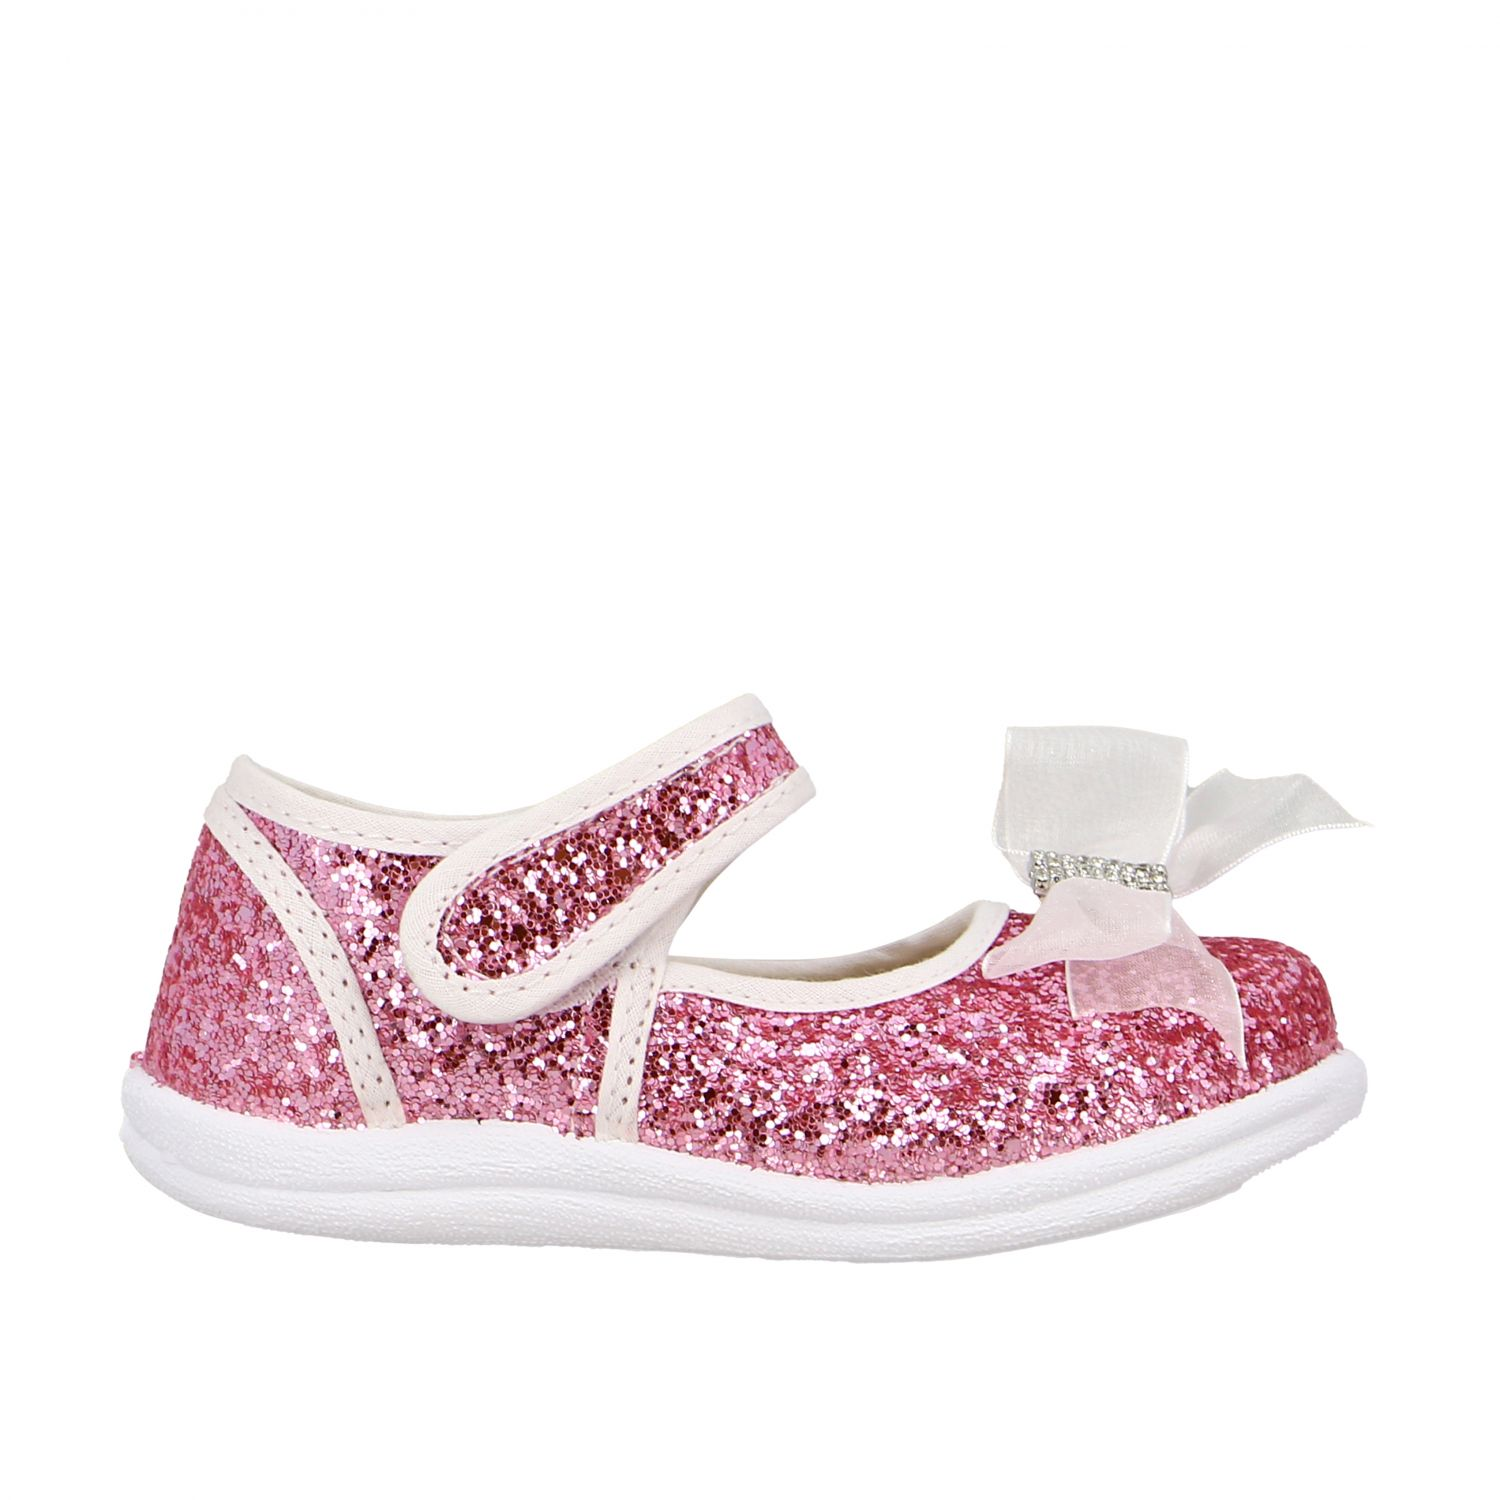 Monnalisa ballet flats in glitter fabric with bow and rhinestones pink 1